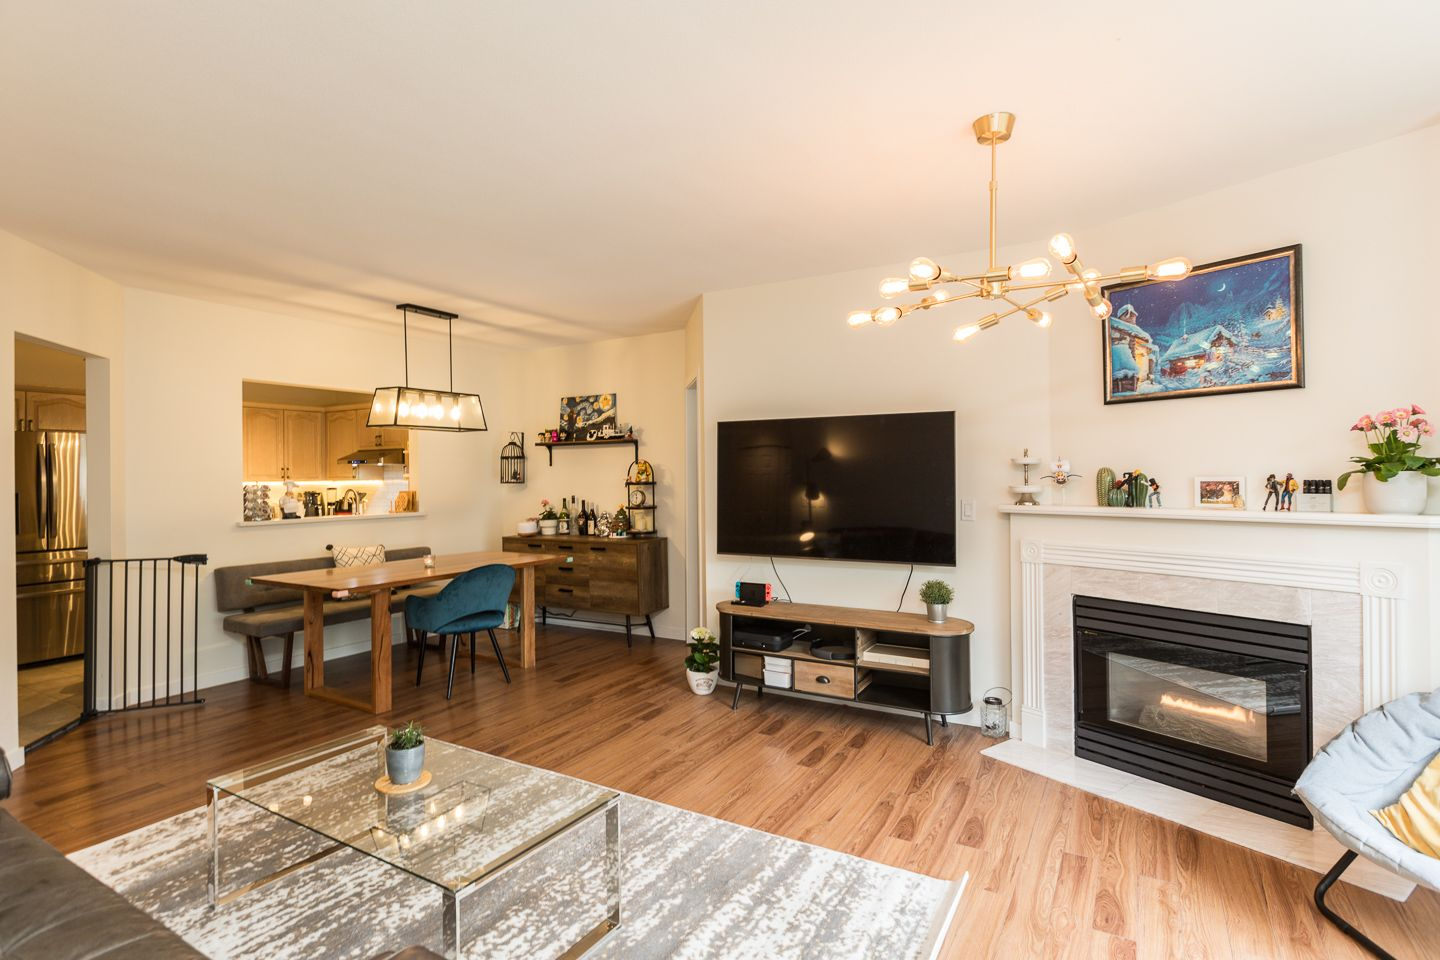 Photo 3: Photos: #8-3701 THURSTON ST in BURNABY: Central Park BS Condo for sale (Burnaby South)  : MLS®# R2572861